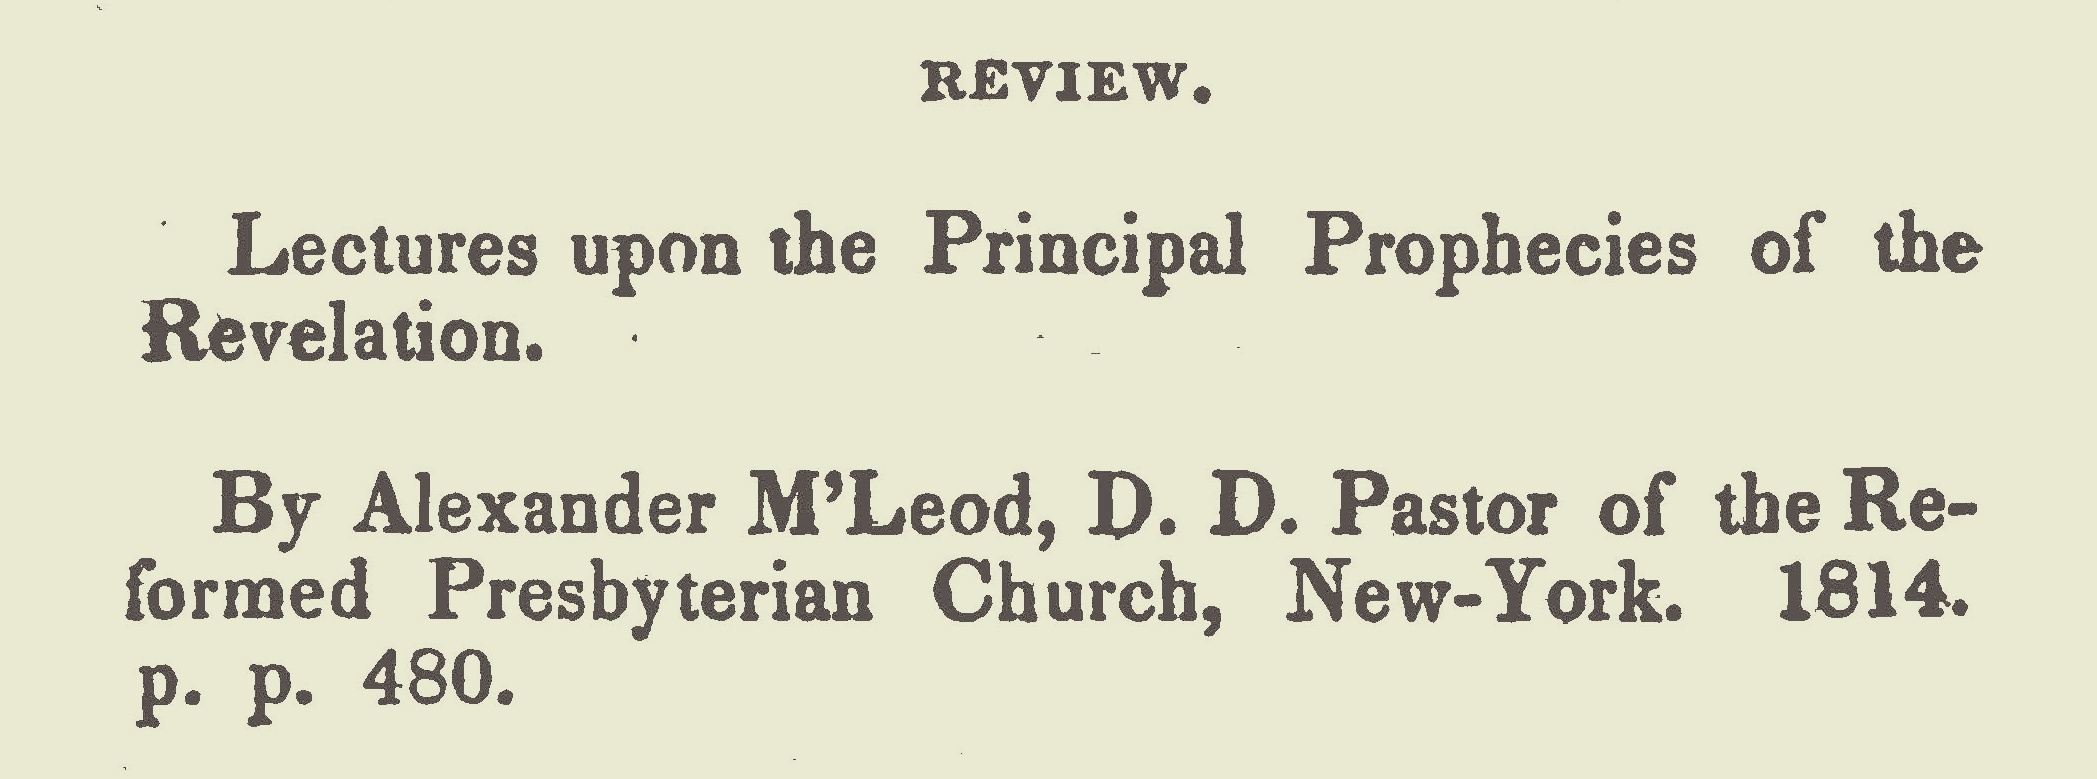 Willson, James Renwick, Review of McLeod's Lectures Title Page.jpg